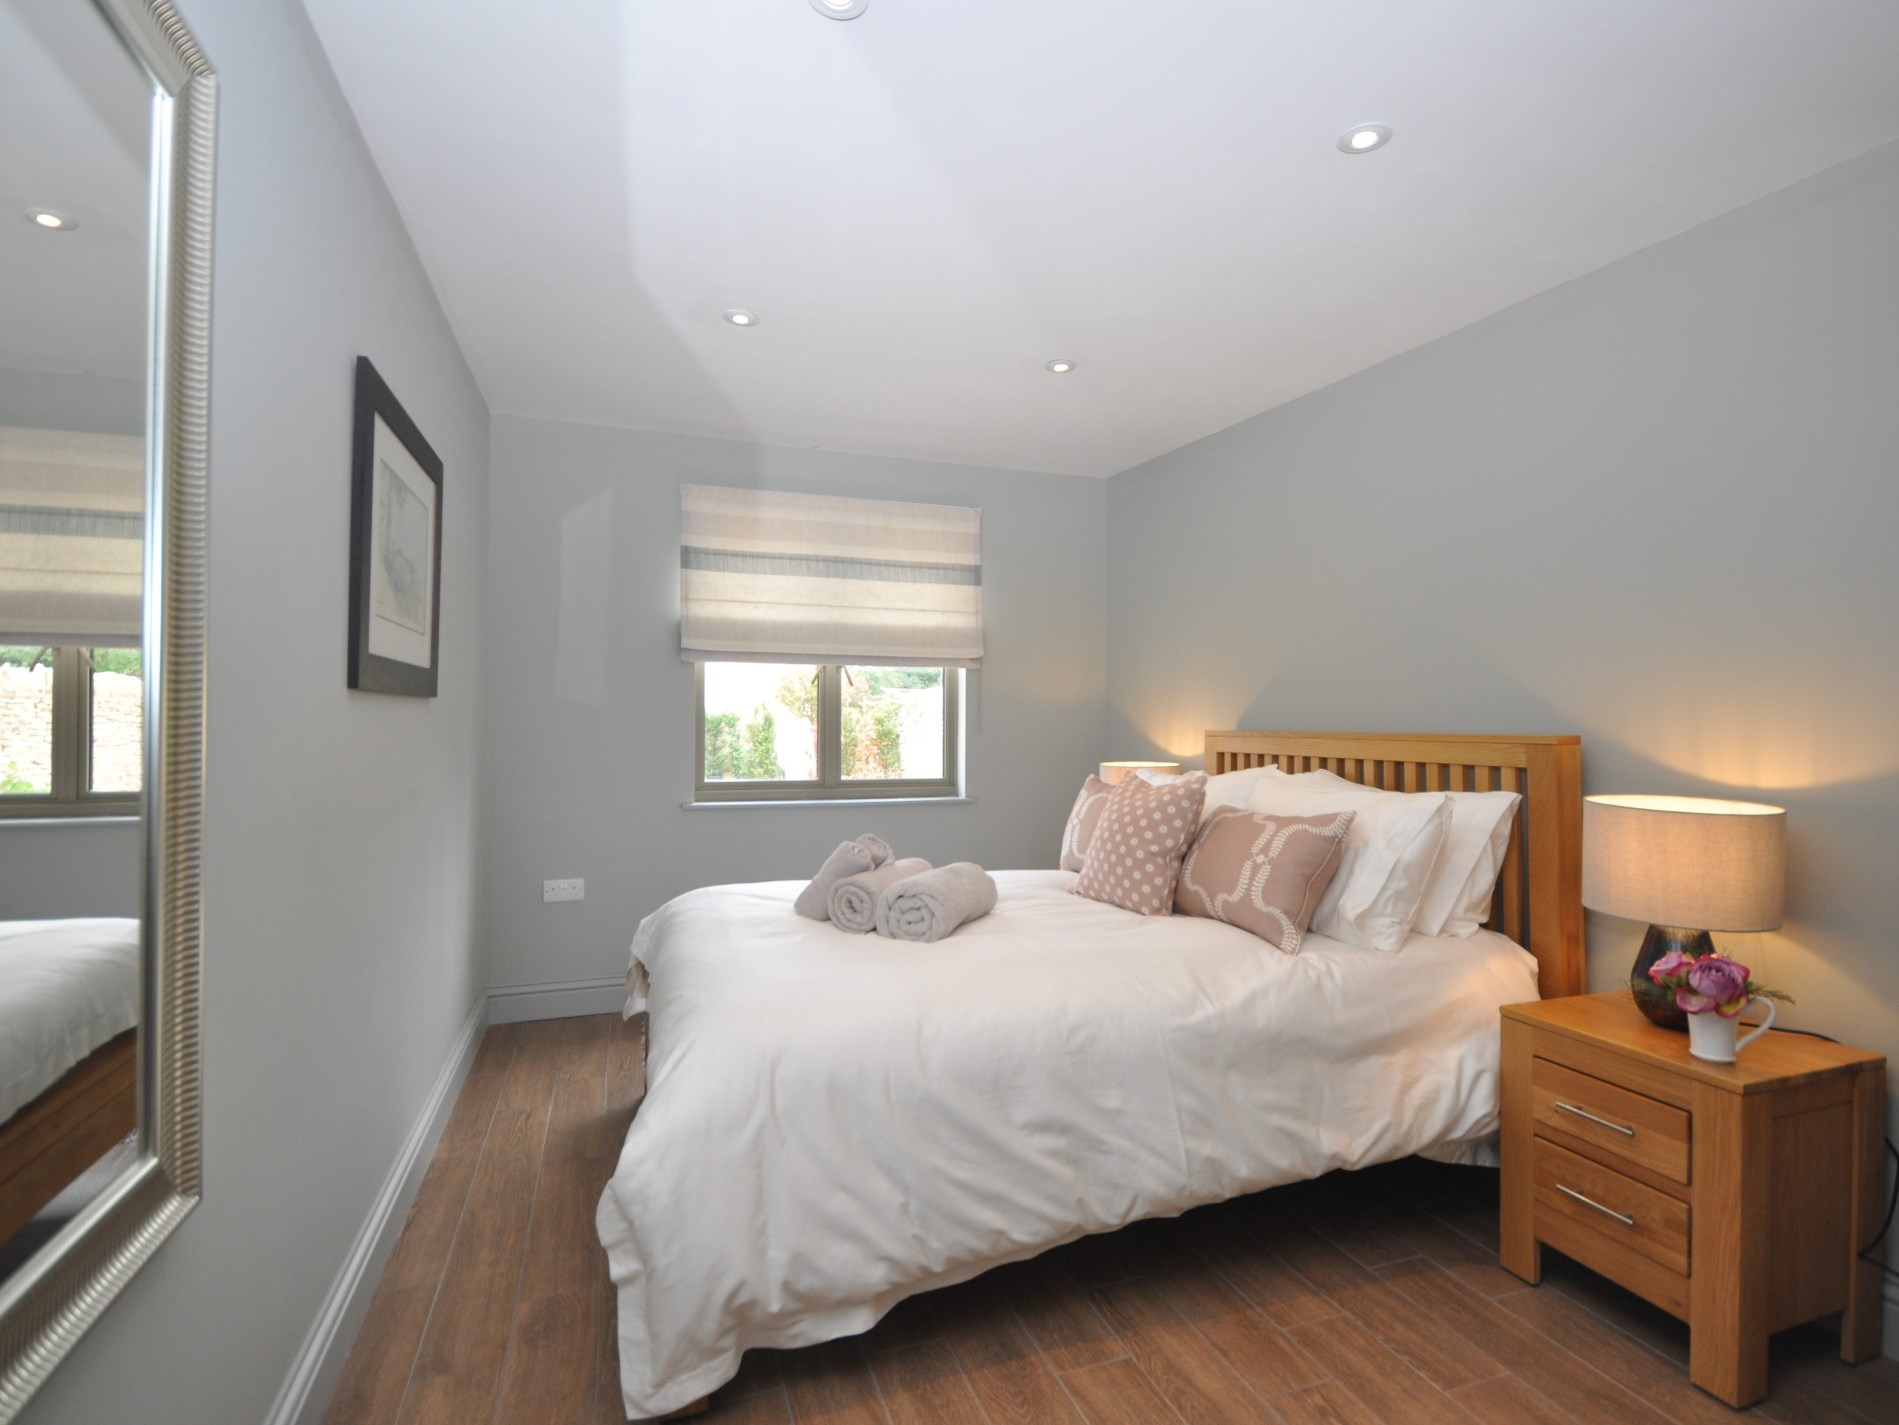 Enjoy views onto the gardens from the spacious double bedroom